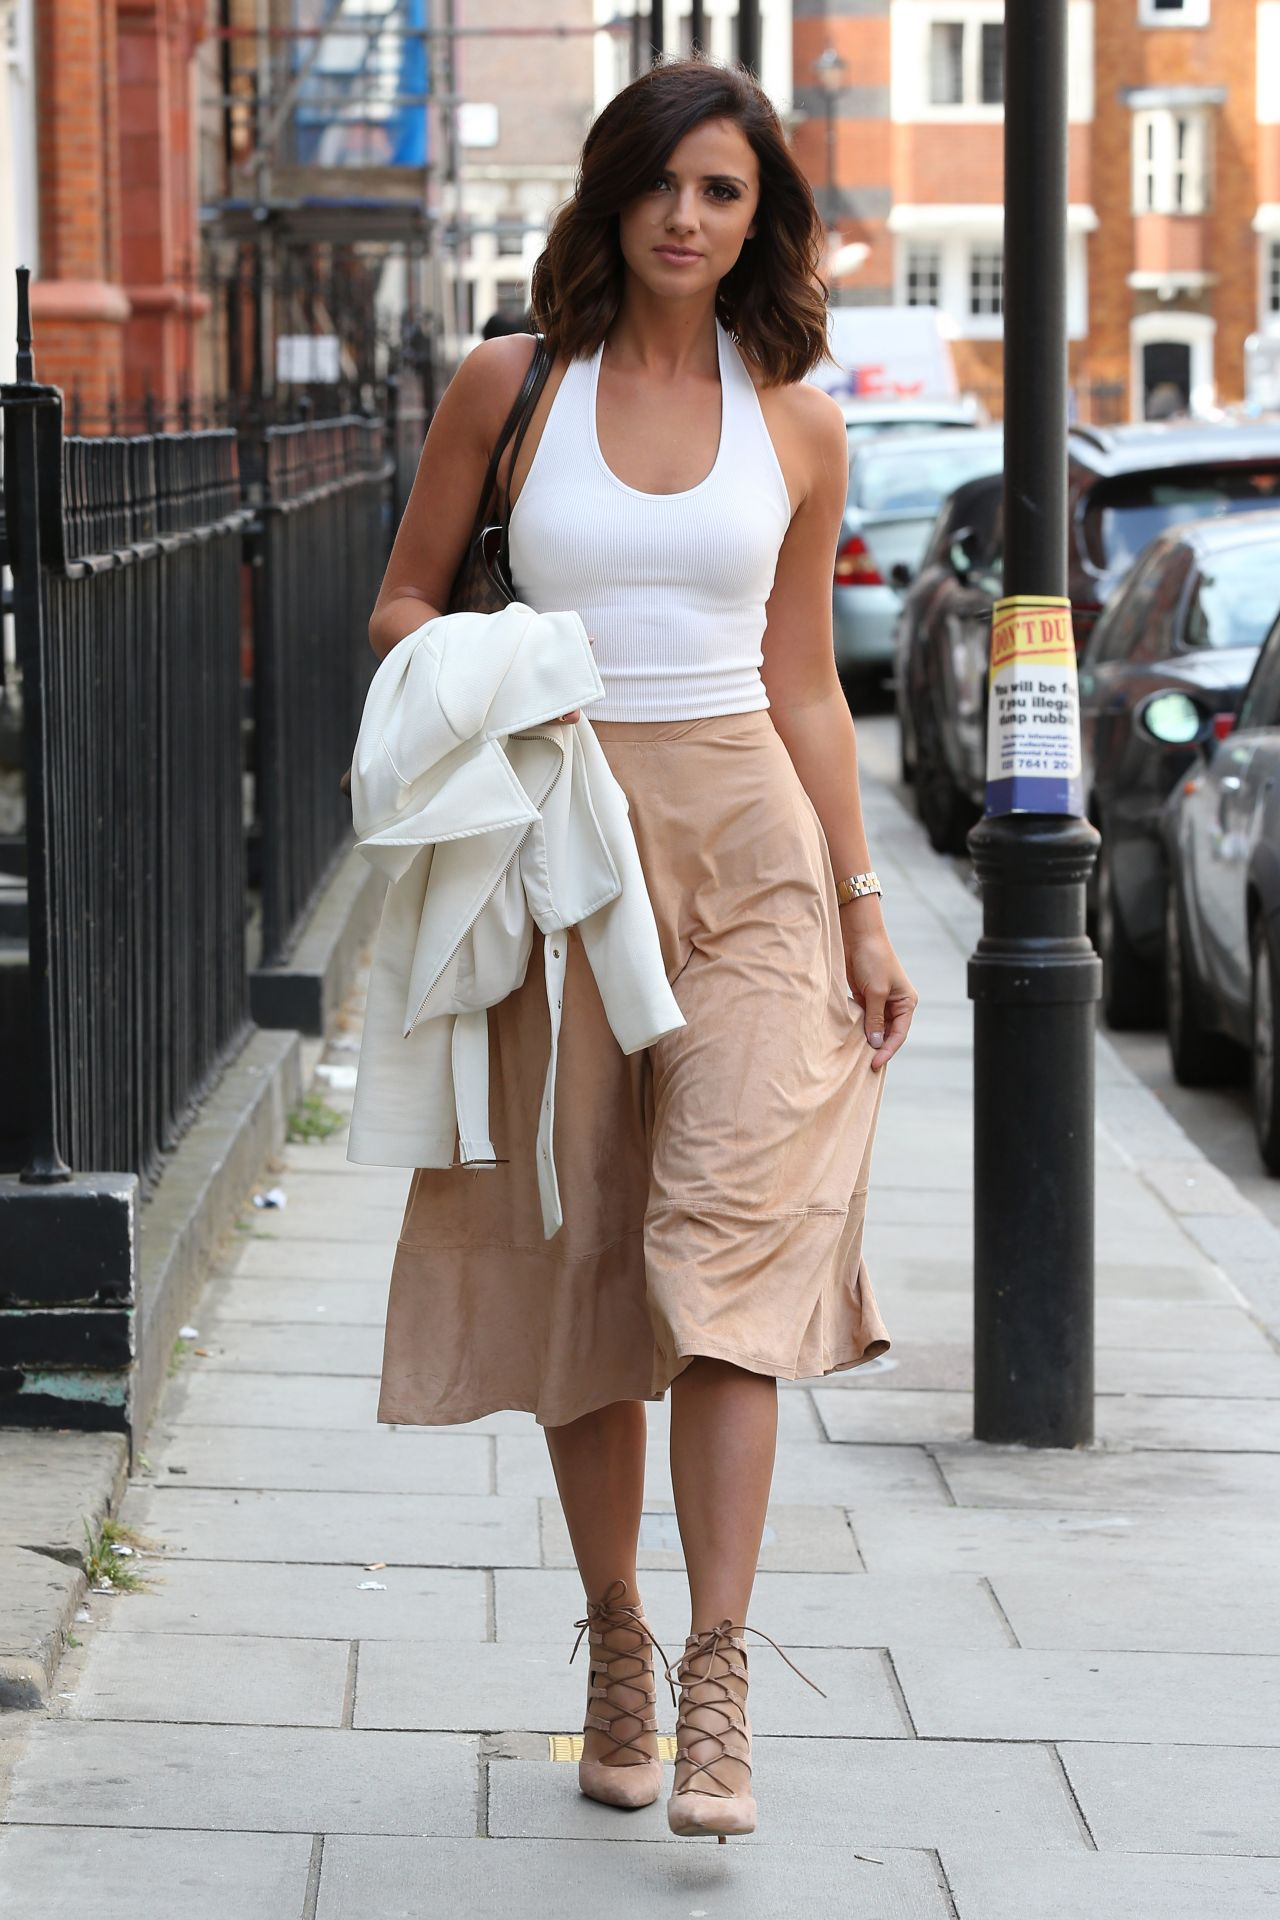 Out In London, July 2015